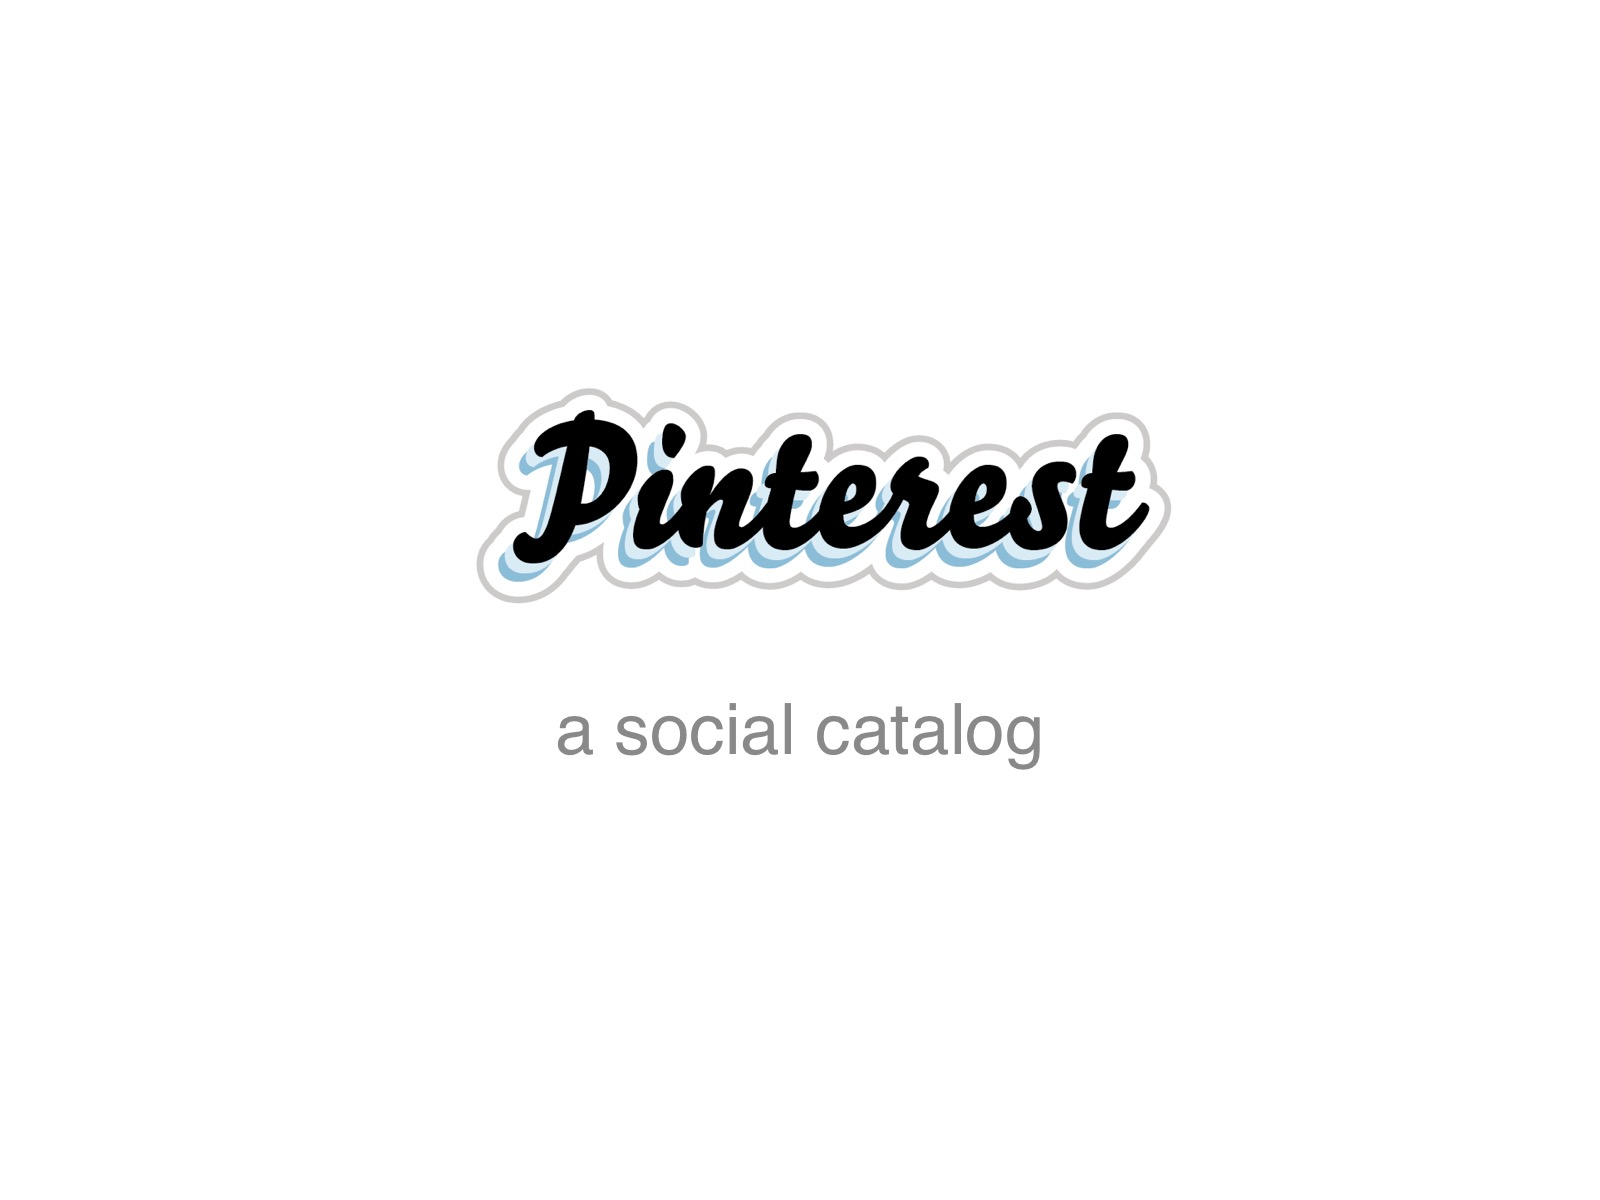 Slide from Pinterest pitch deck